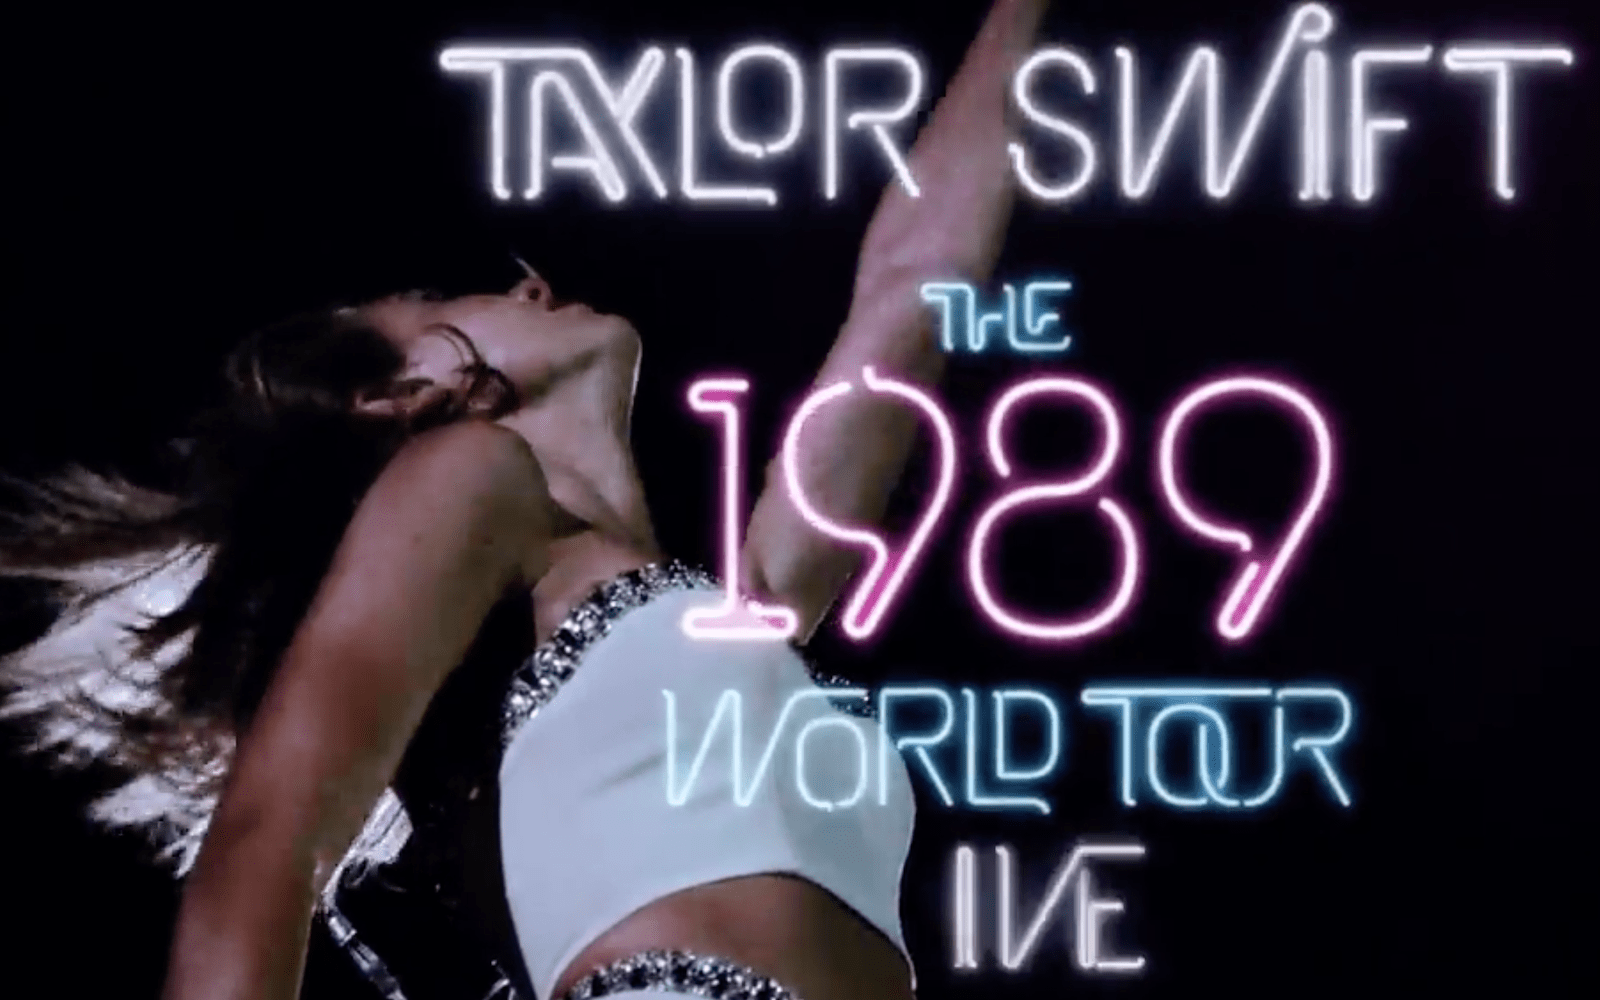 Taylor Swift reveals 1989 World Tour film coming exclusively to Apple Music on Dec. 20